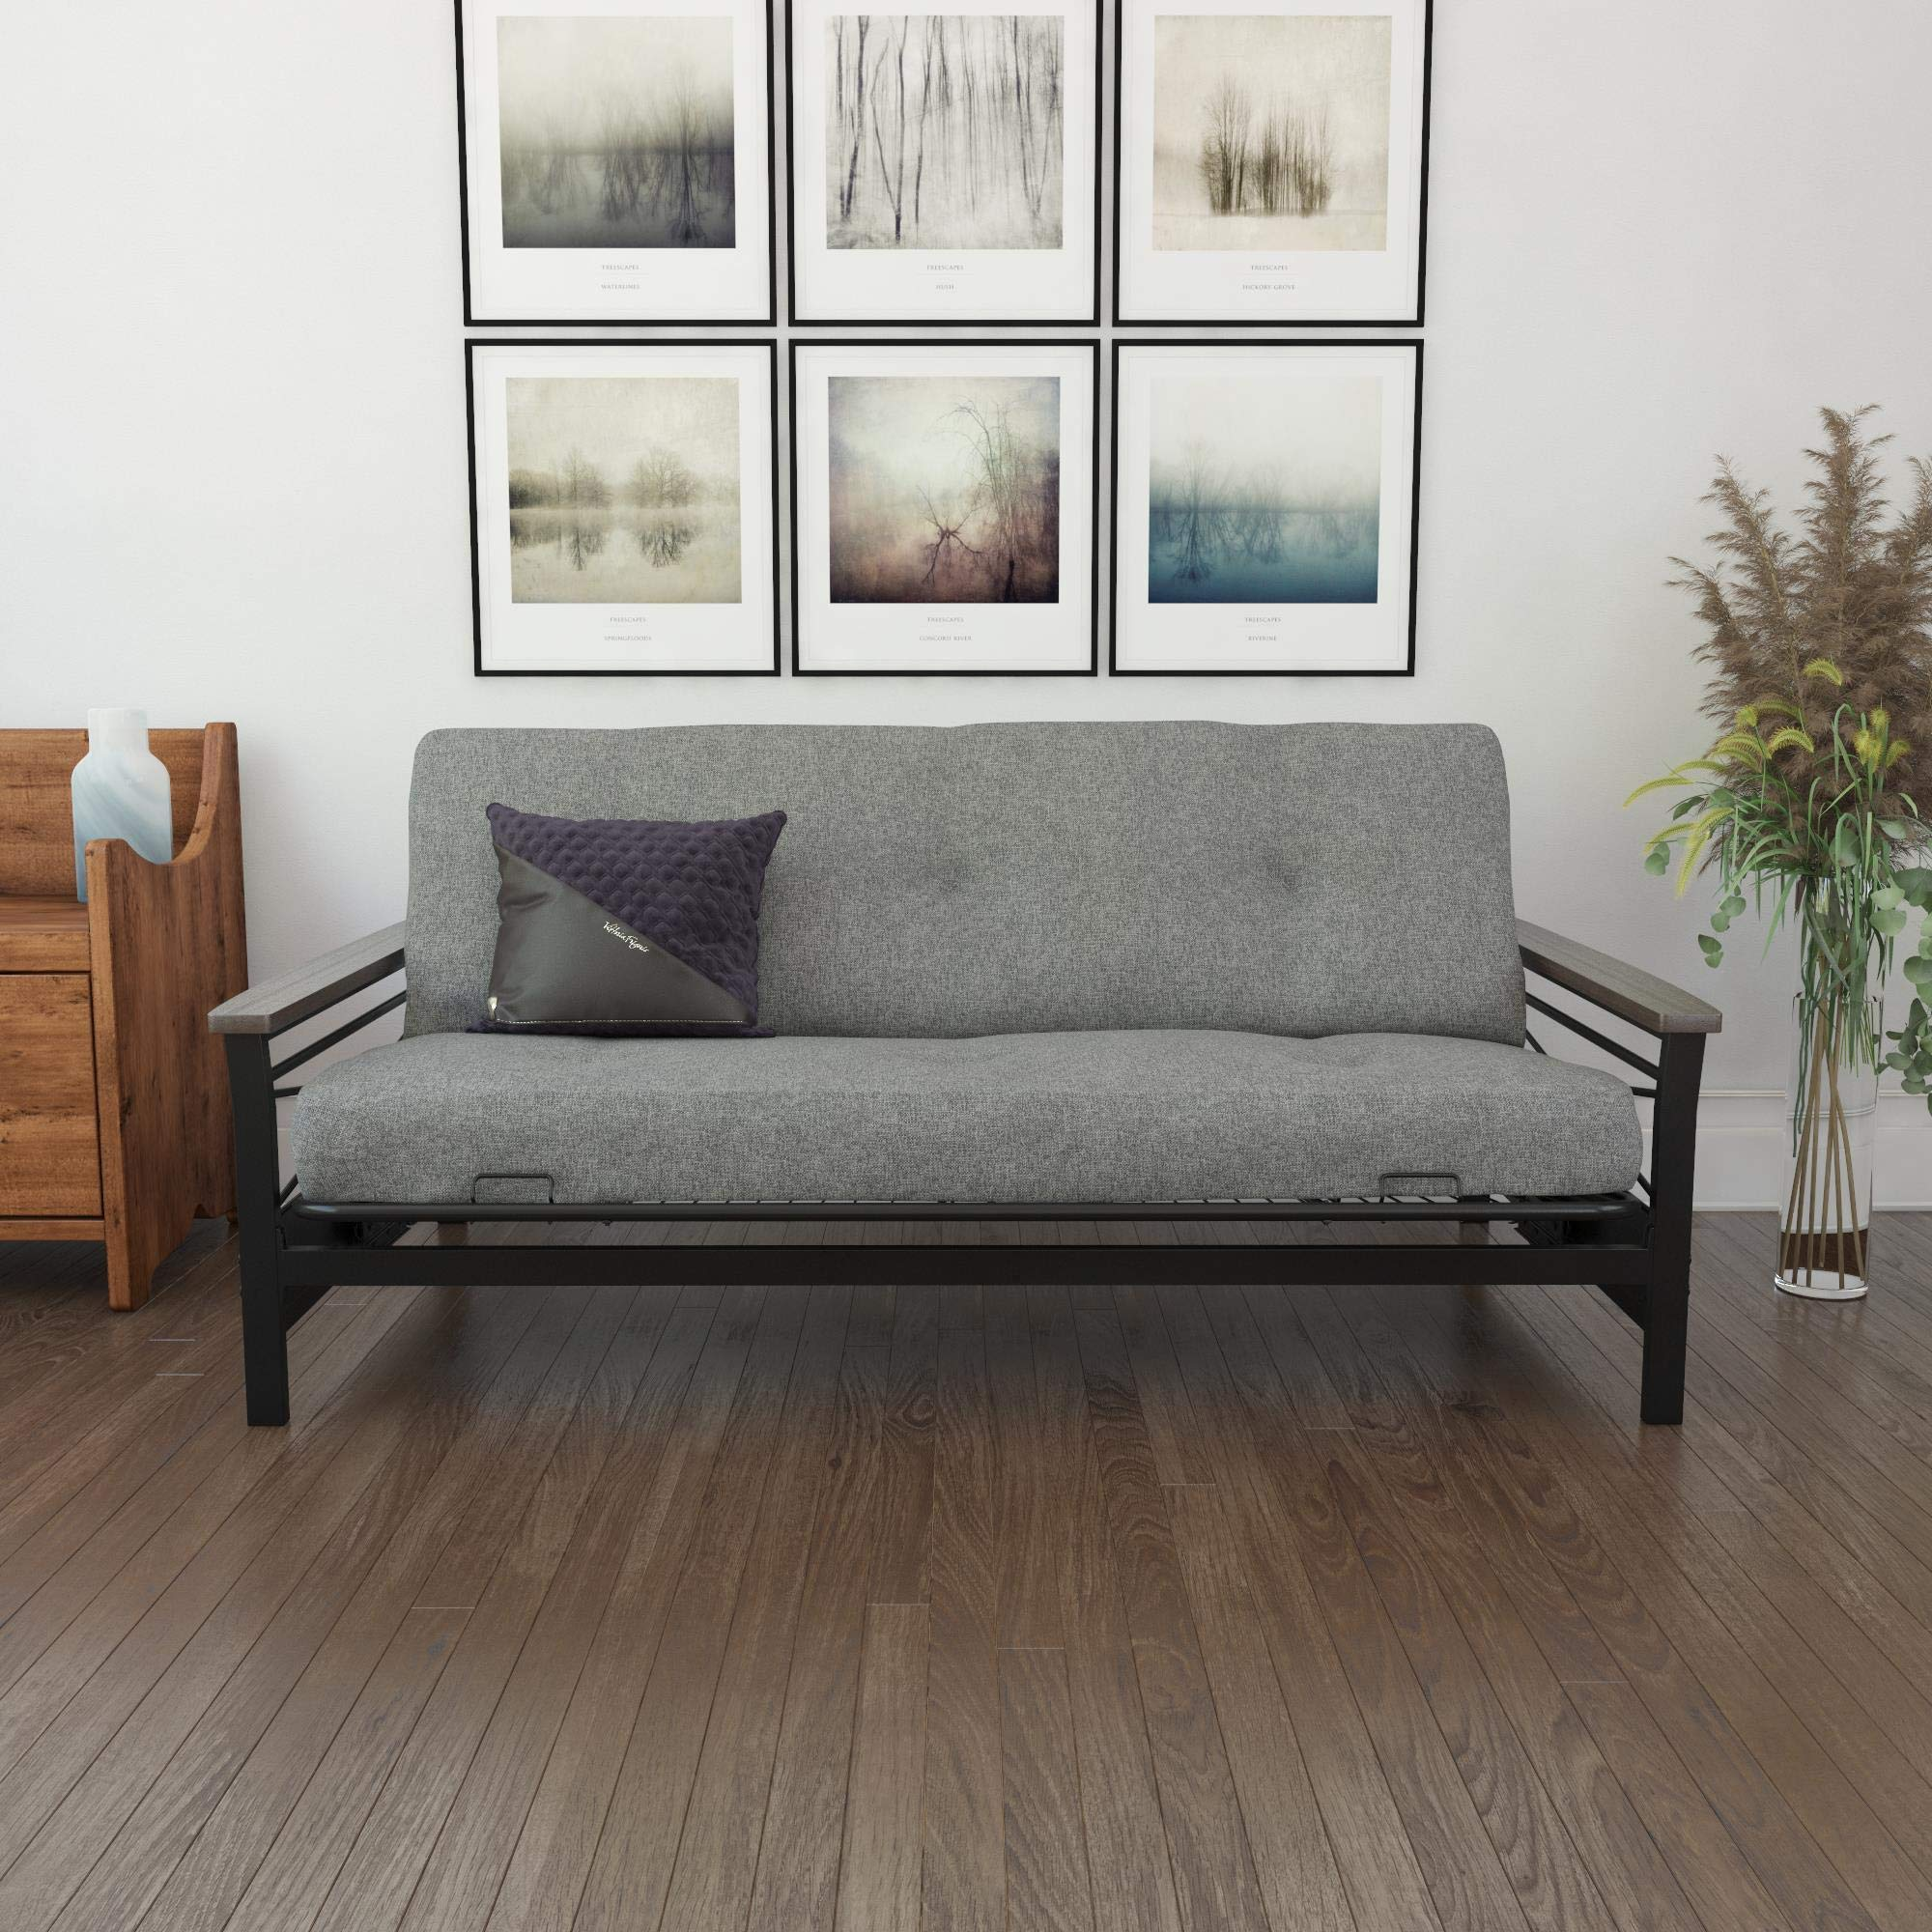 DHP Essence 6'' Coil Futon Mattress with CertiPUR-US Certified Foam, Full, Grey Linen by DHP